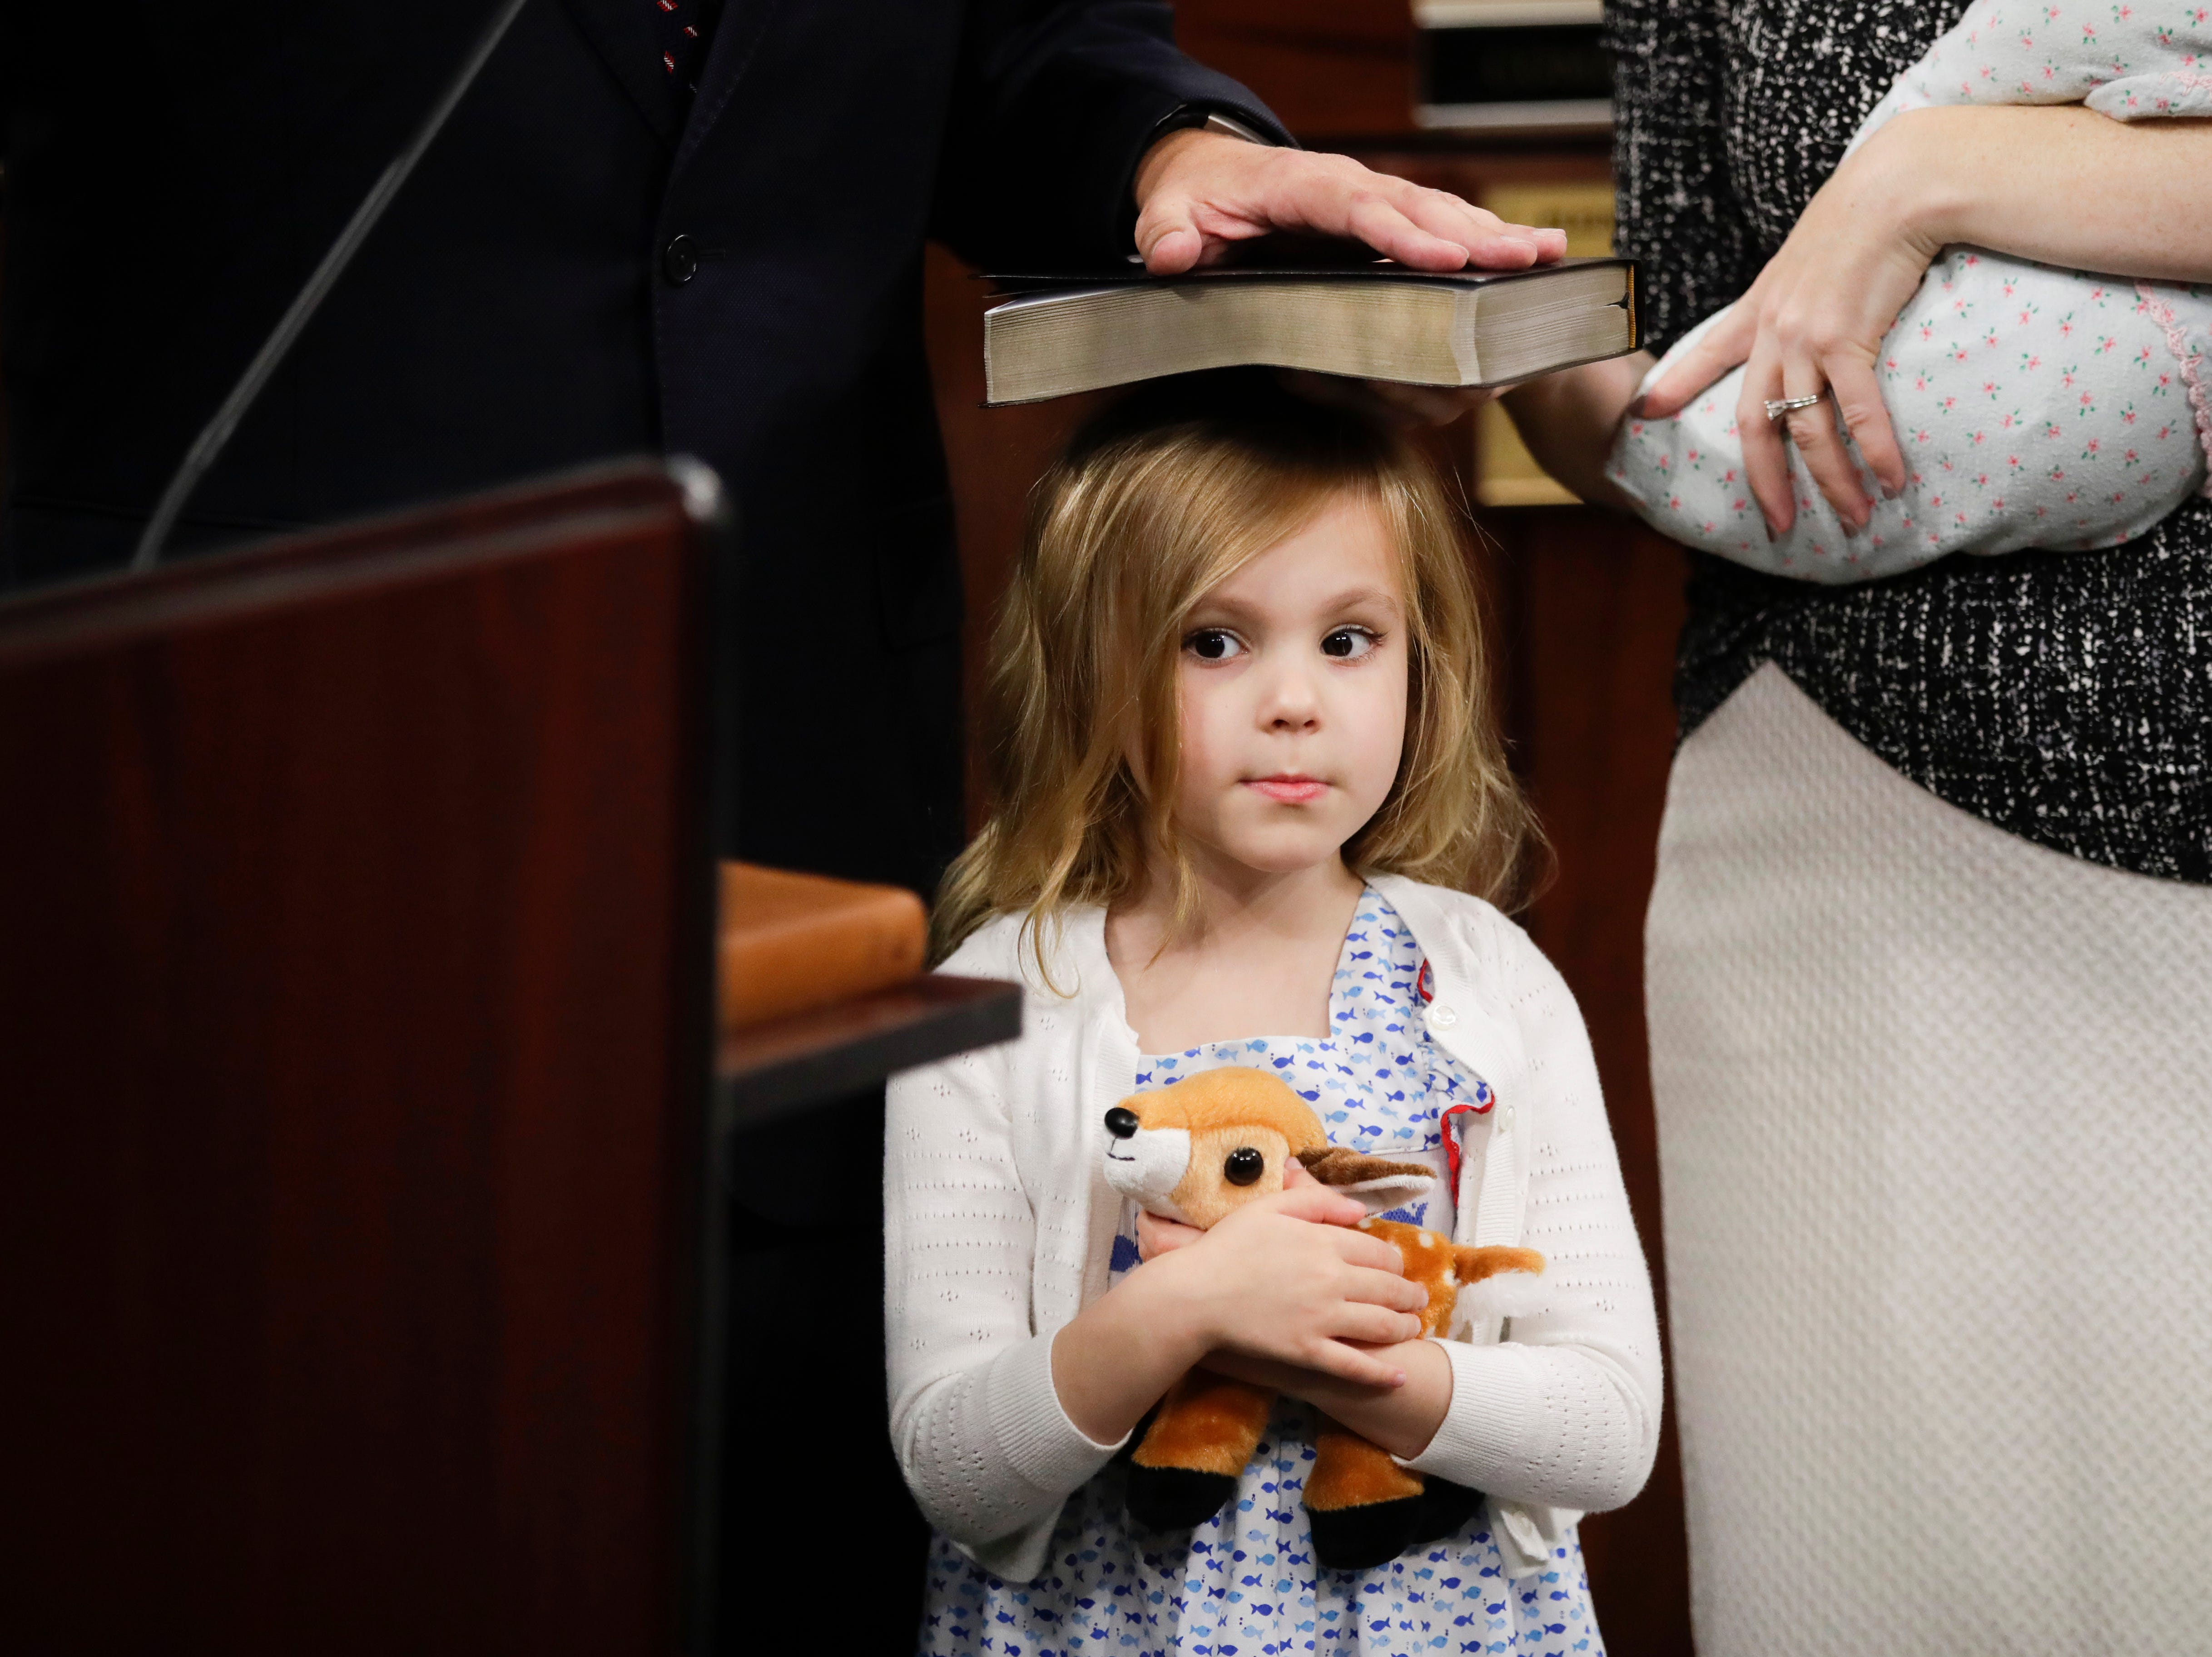 Madeline Minor, 4, holds up the Bible with her head as her father, newly elected County Commissioner Rick Minor is sworn in during the County Commission reorganization and installation meeting Tuesday, Nov. 20, 2018.